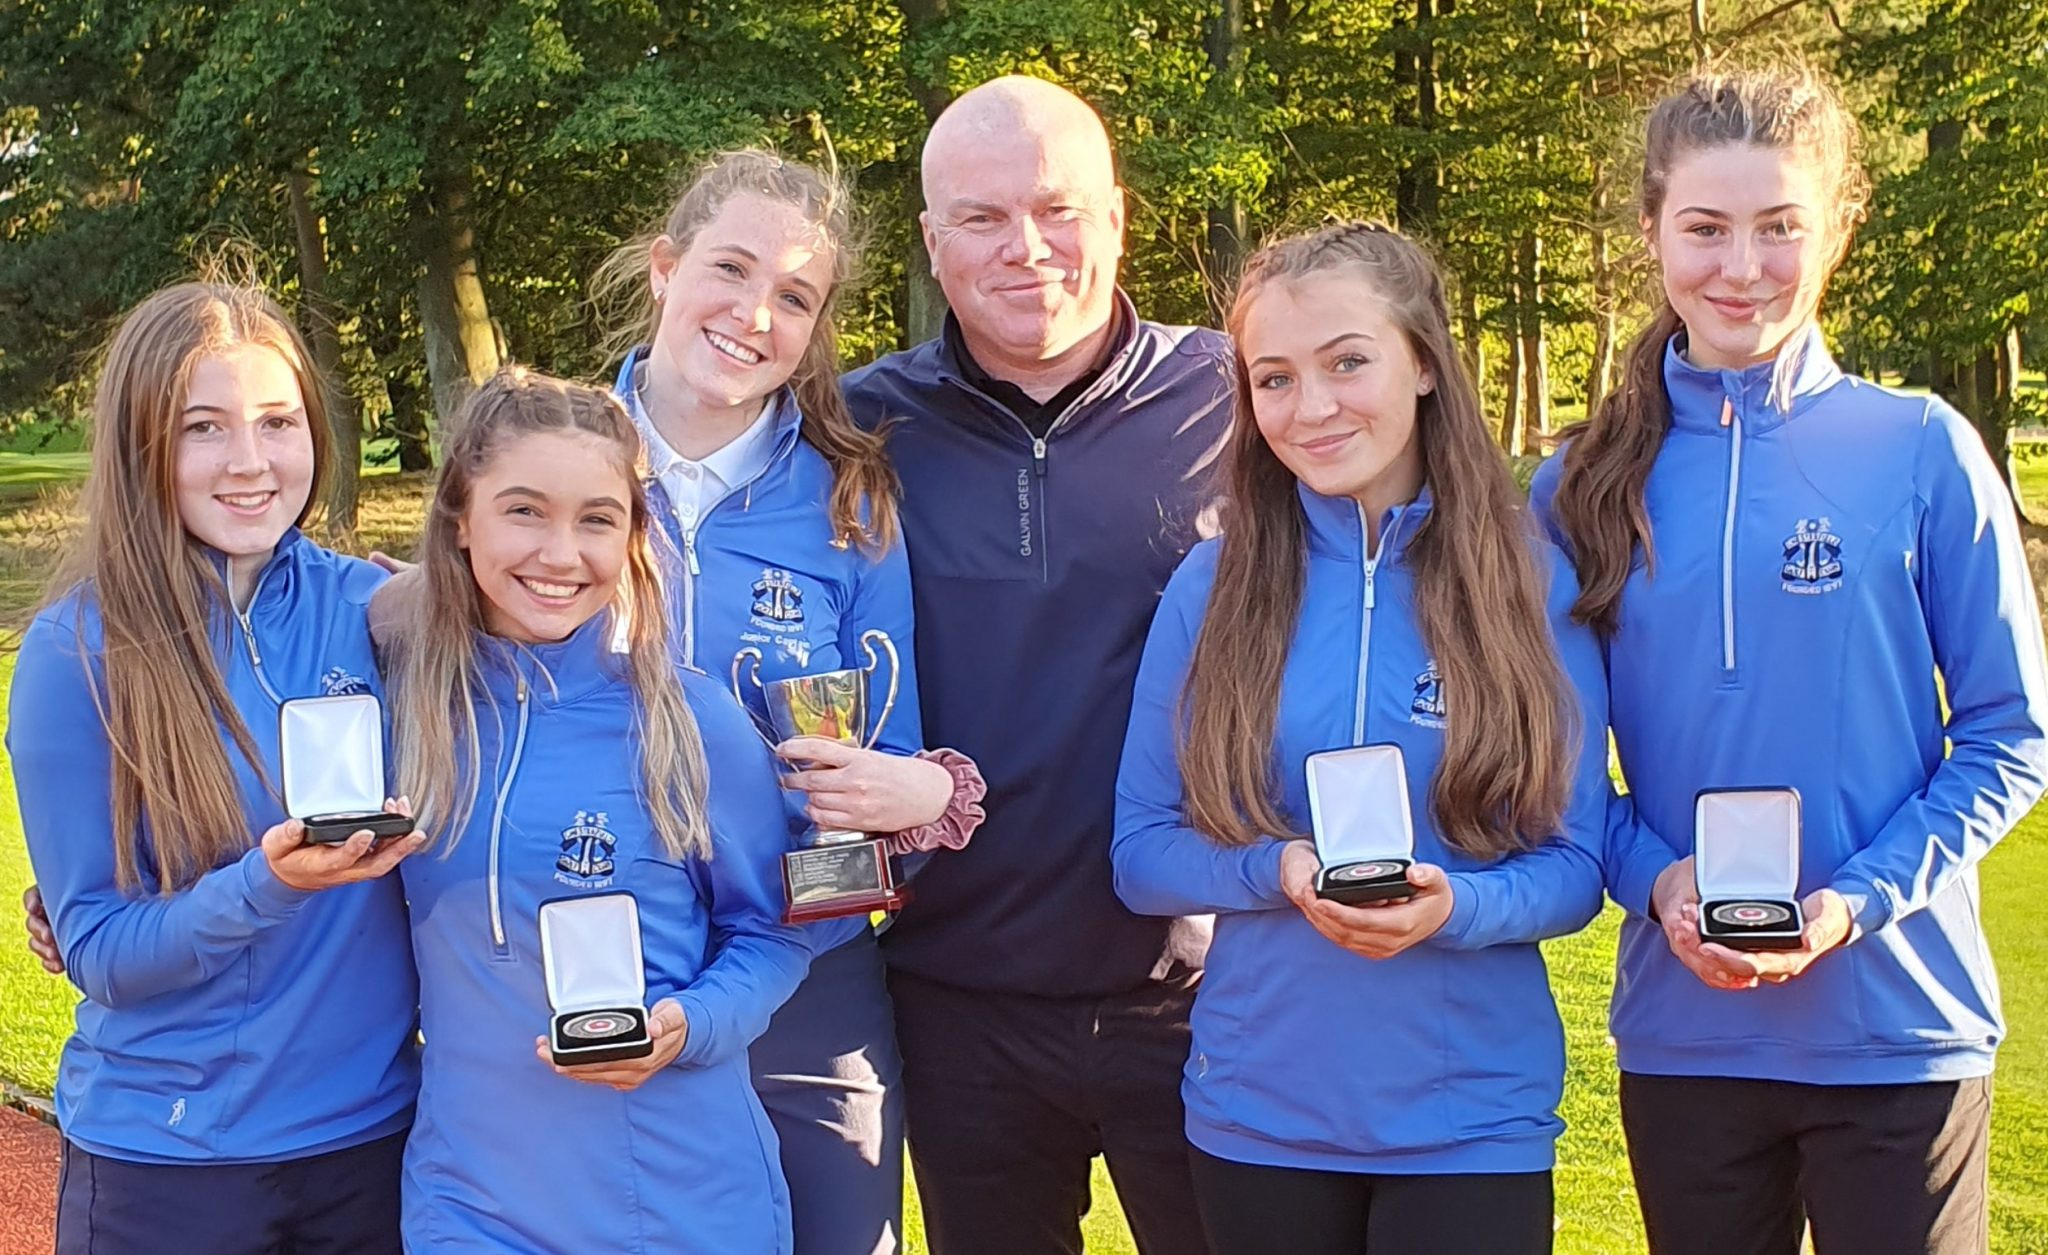 Chesterfield juniors display 'girl power' to claim unique win